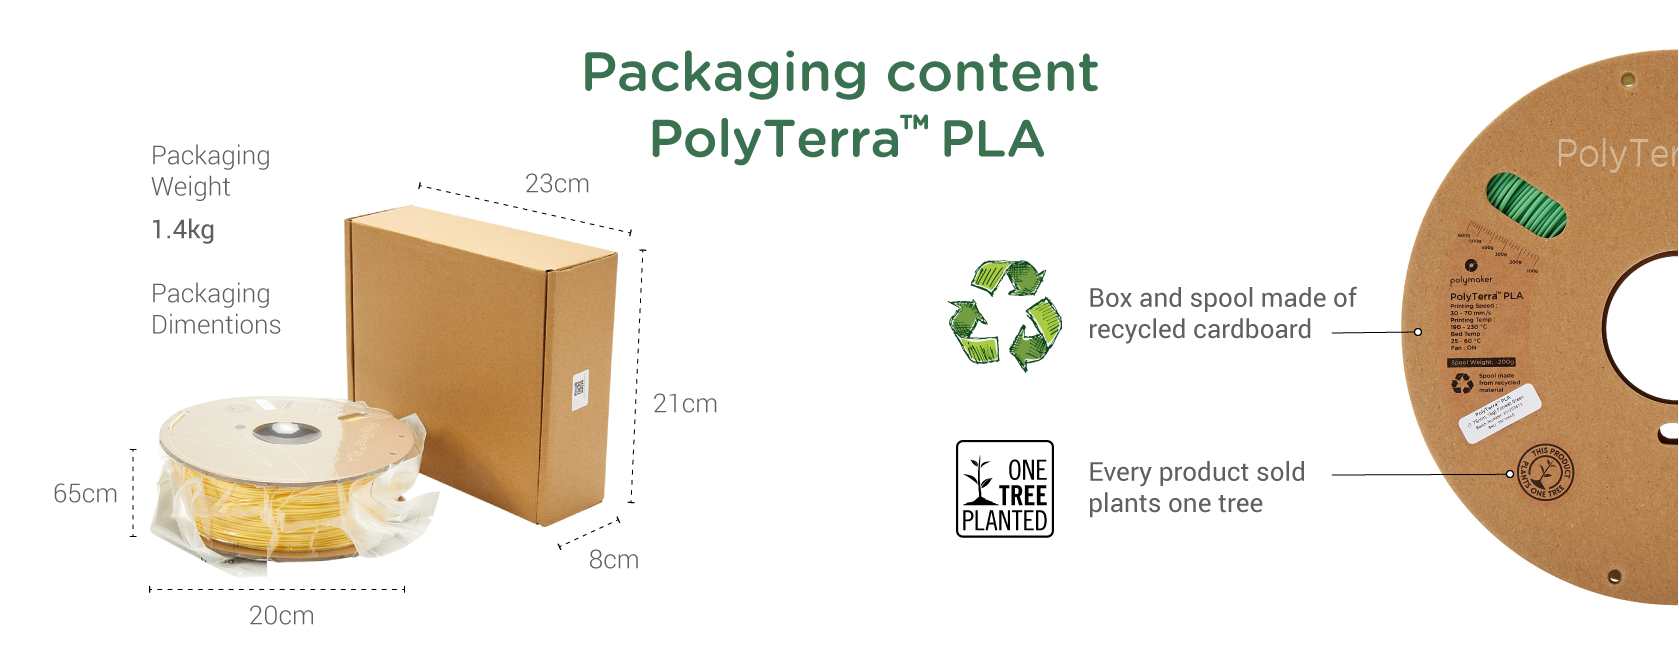 PolyTerra-Packaging-Content